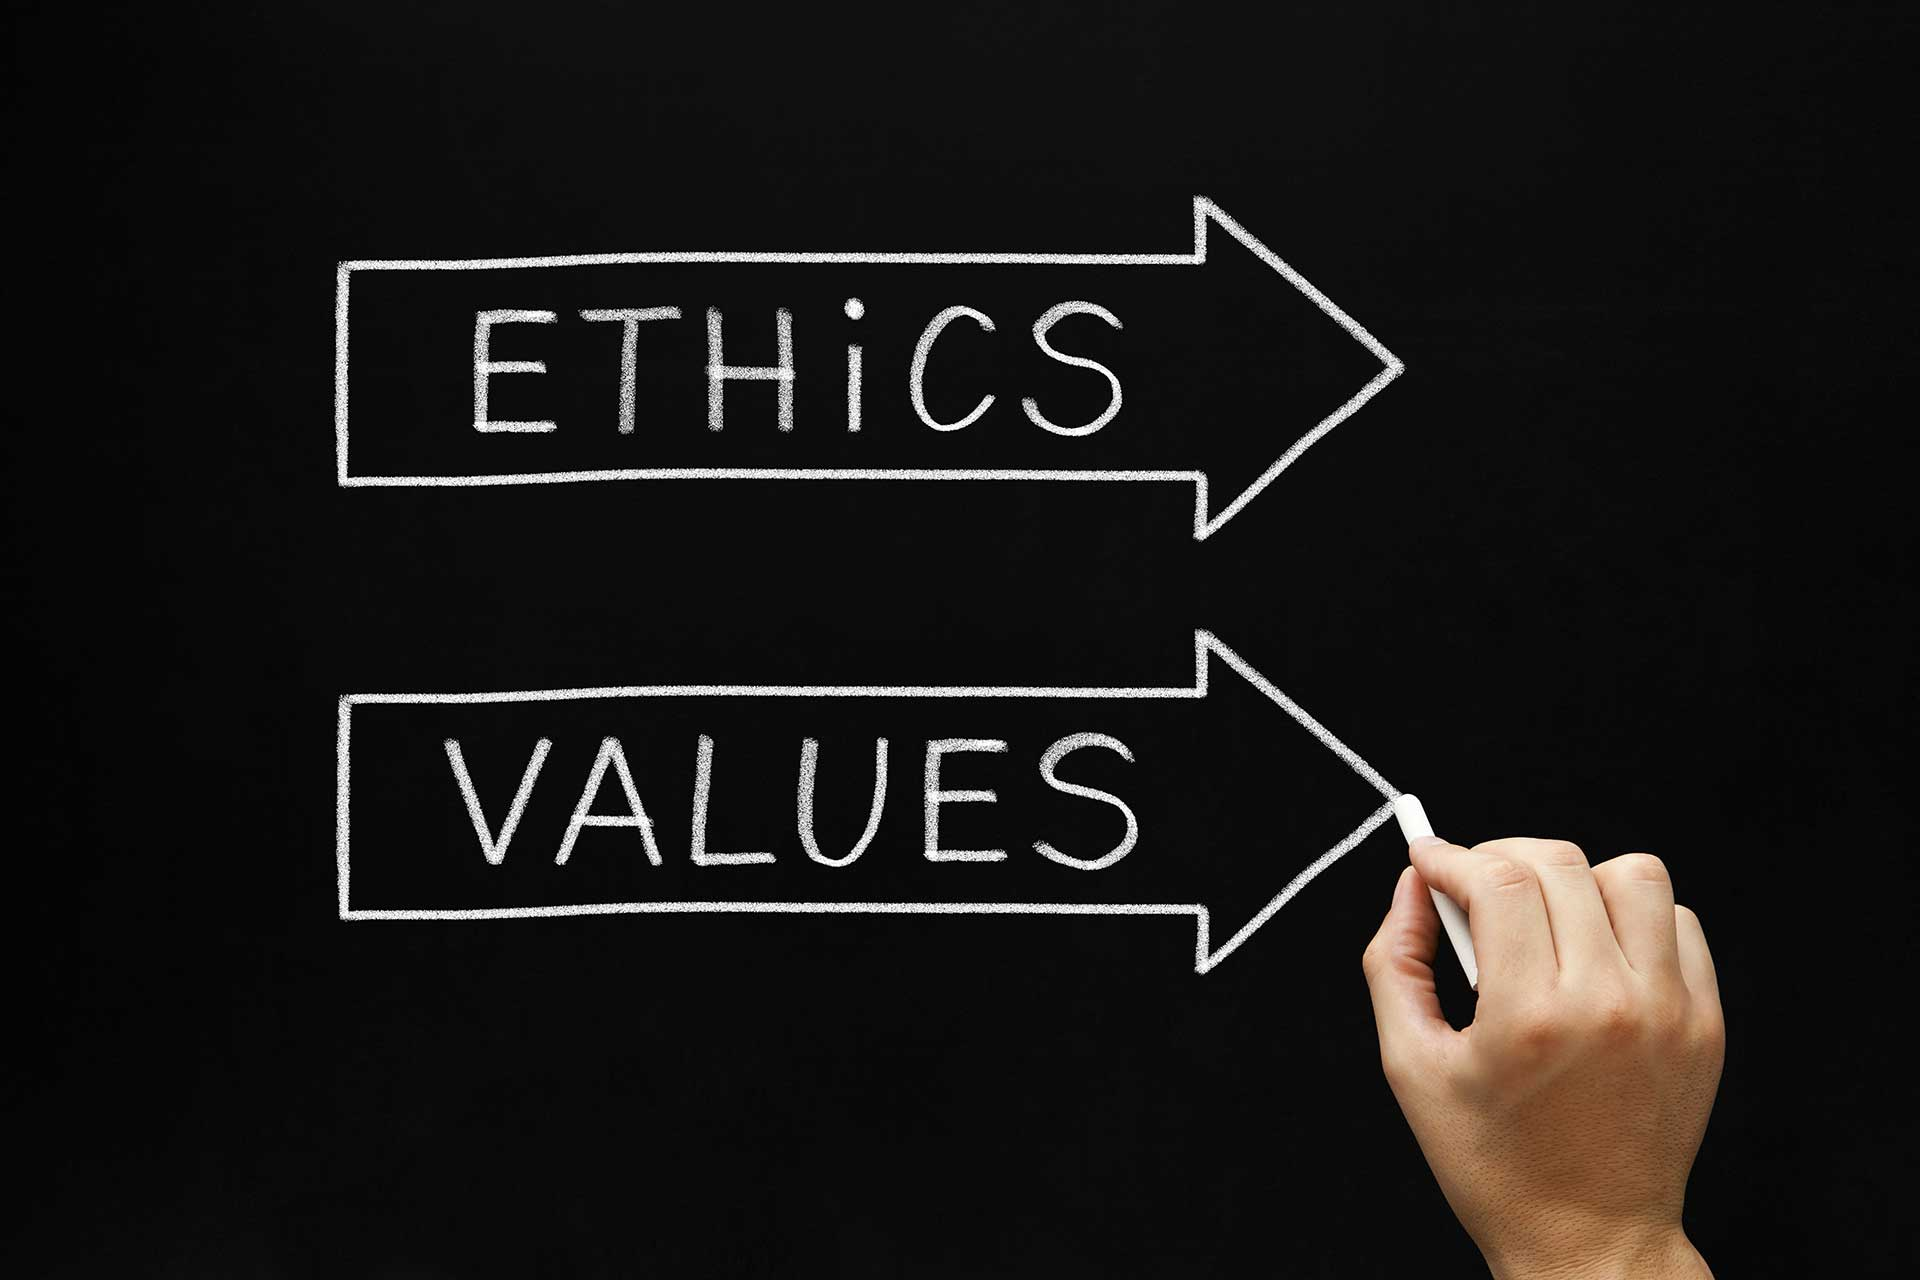 Ethics, values